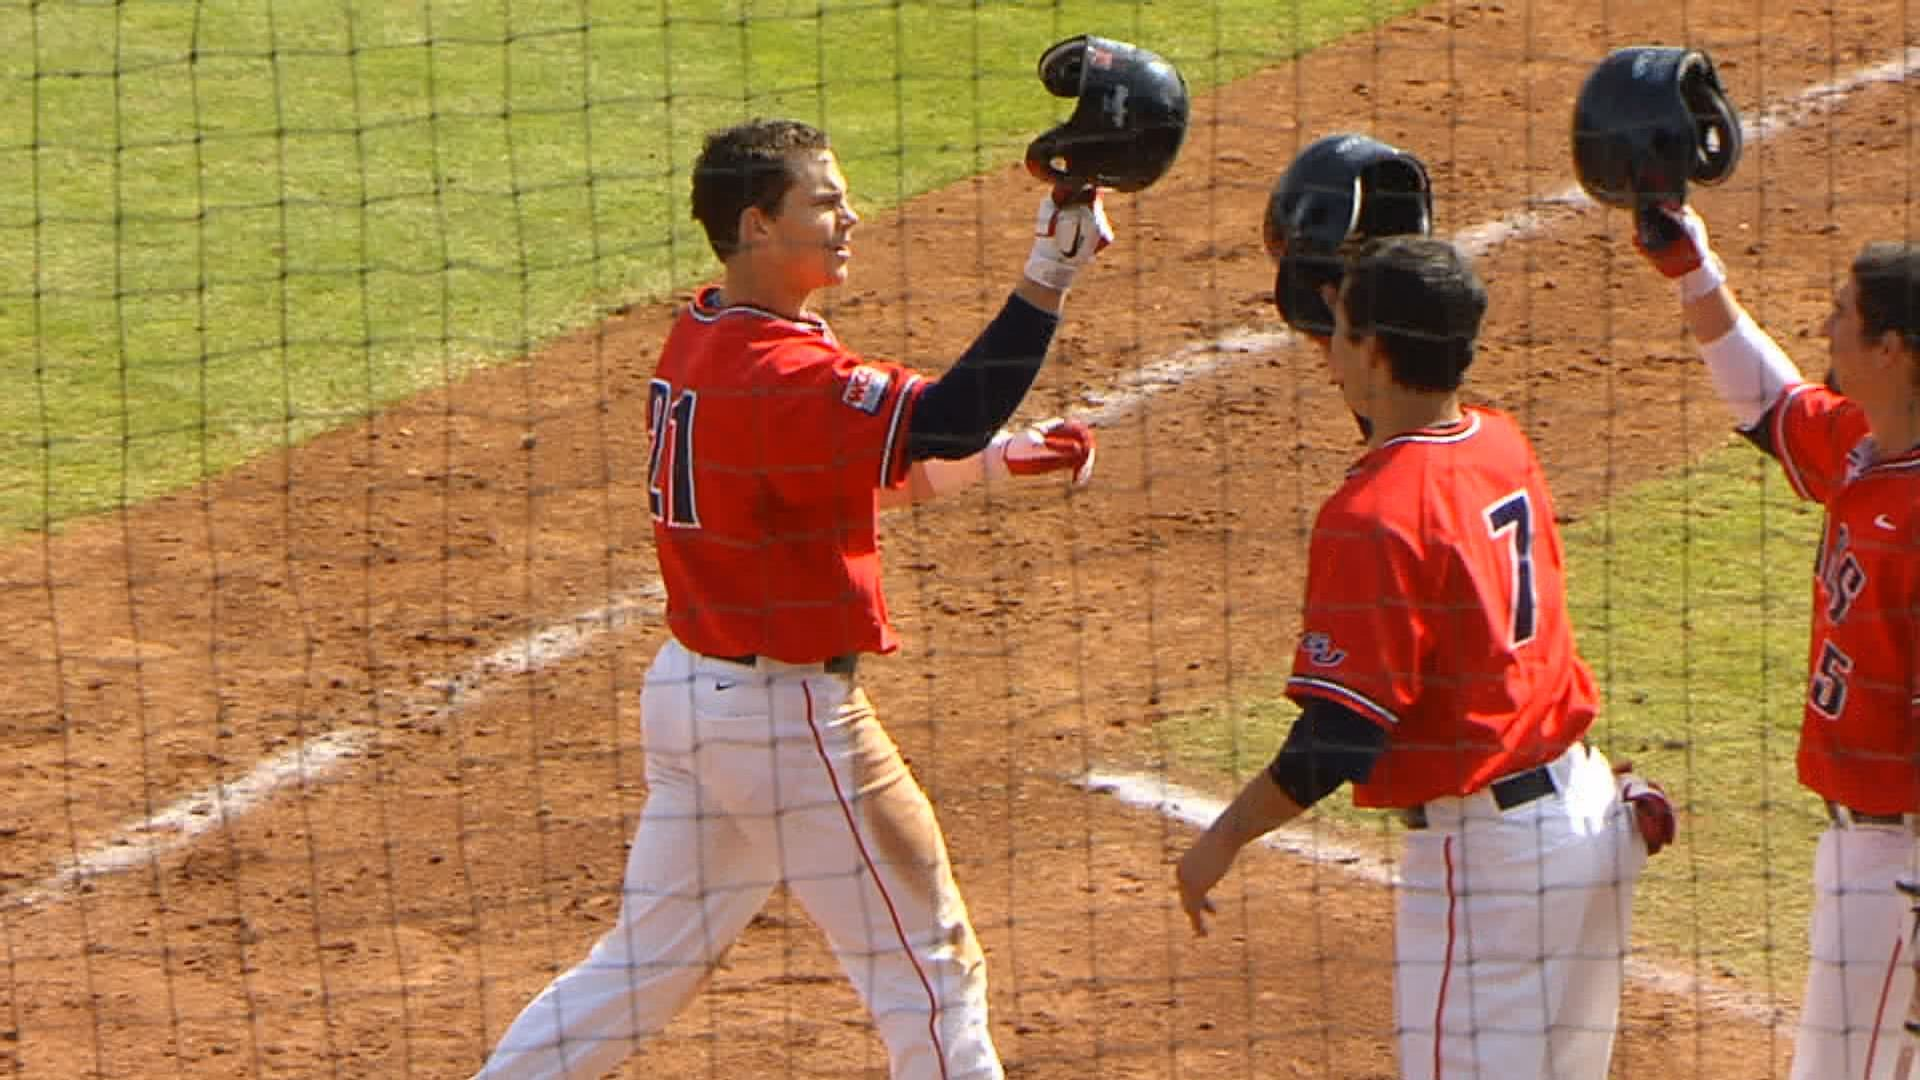  Royce Bollinger hit two home runs in Sunday's win over Hawaii (Photo: SWX)